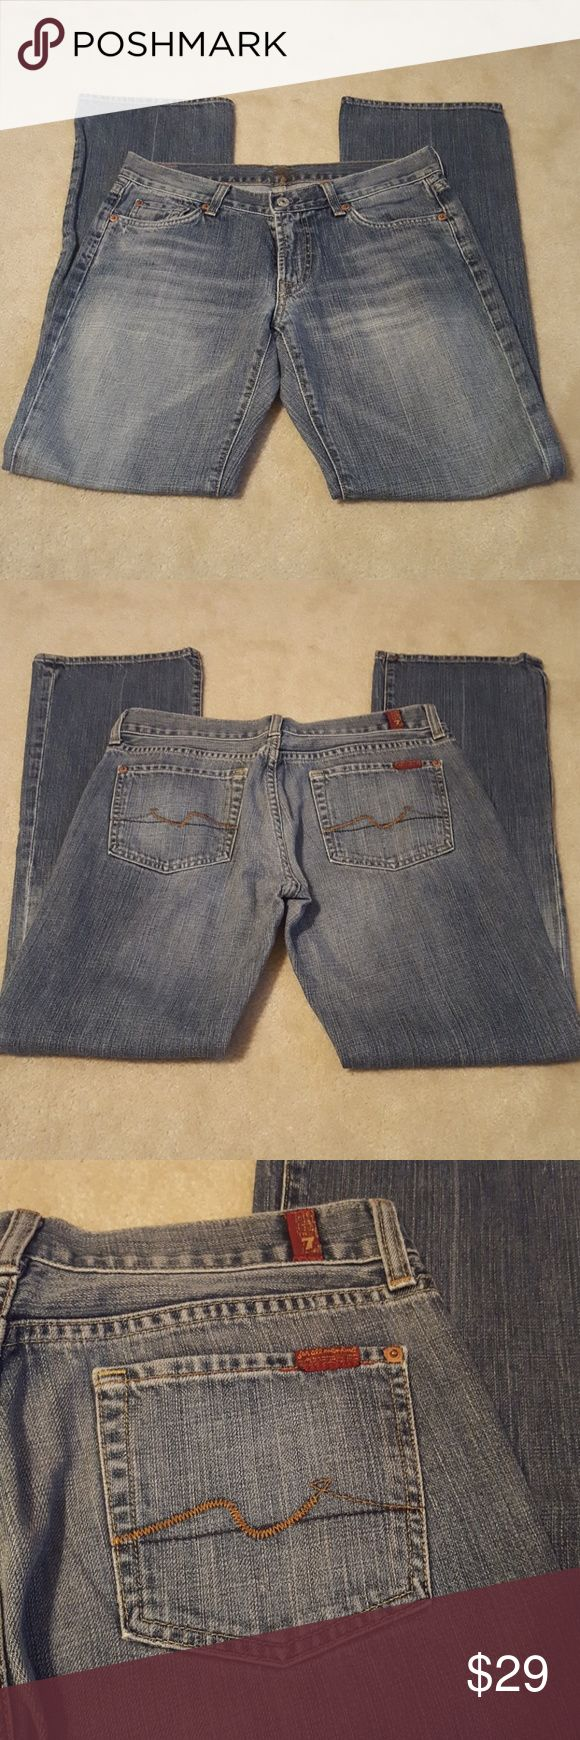 Authentic 7 for all Mankind bootleg jeans SIZE 30 Authentic 7 for all Mankind bootleg jeans SIZE 30- great condition-gently worn 7 For All Mankind Jeans Boot Cut